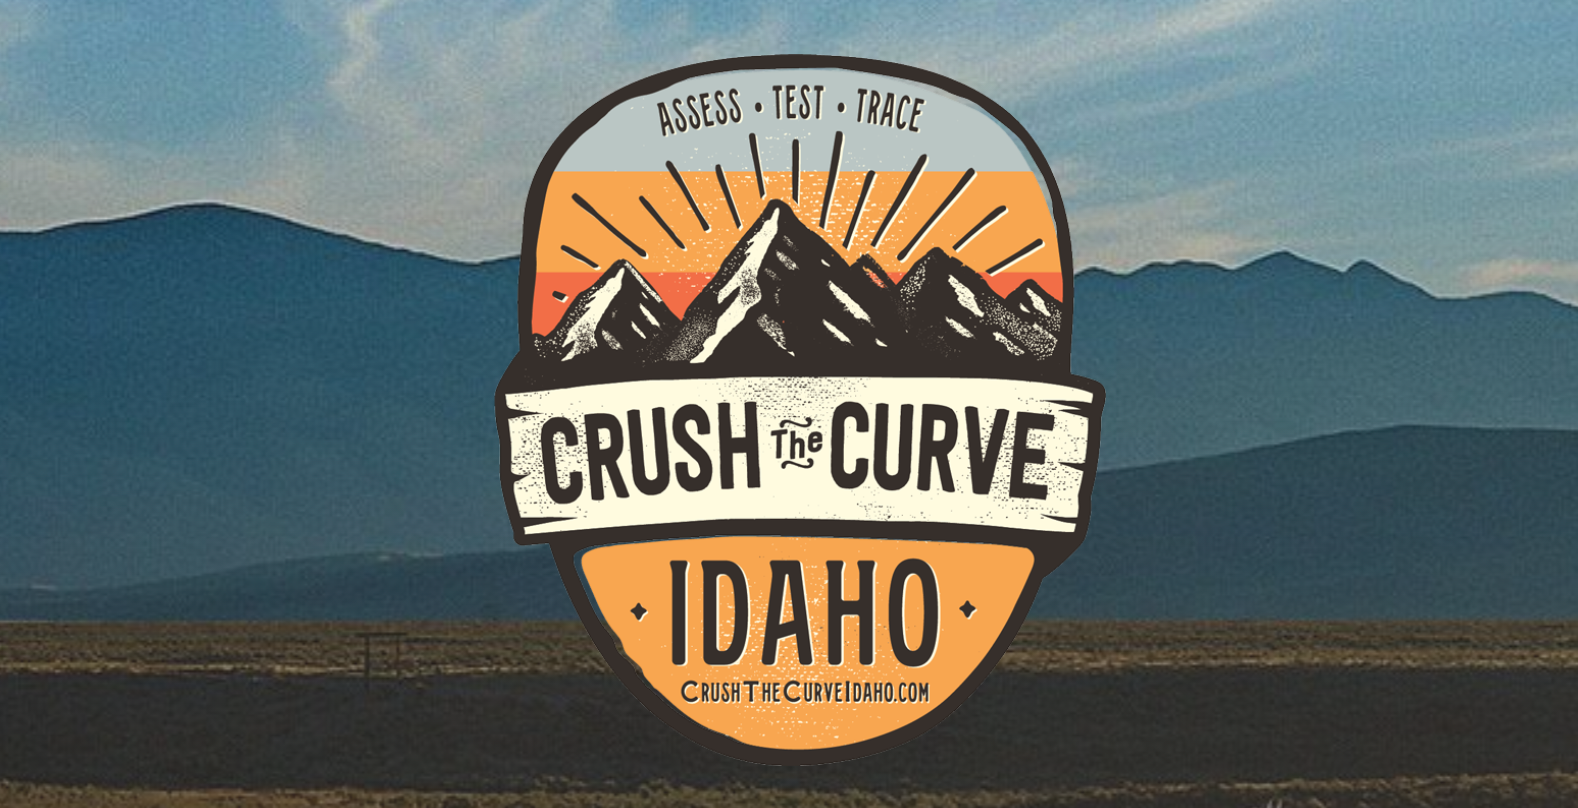 Idaho hired Crush the Curve for long-term care facilities, employers testing